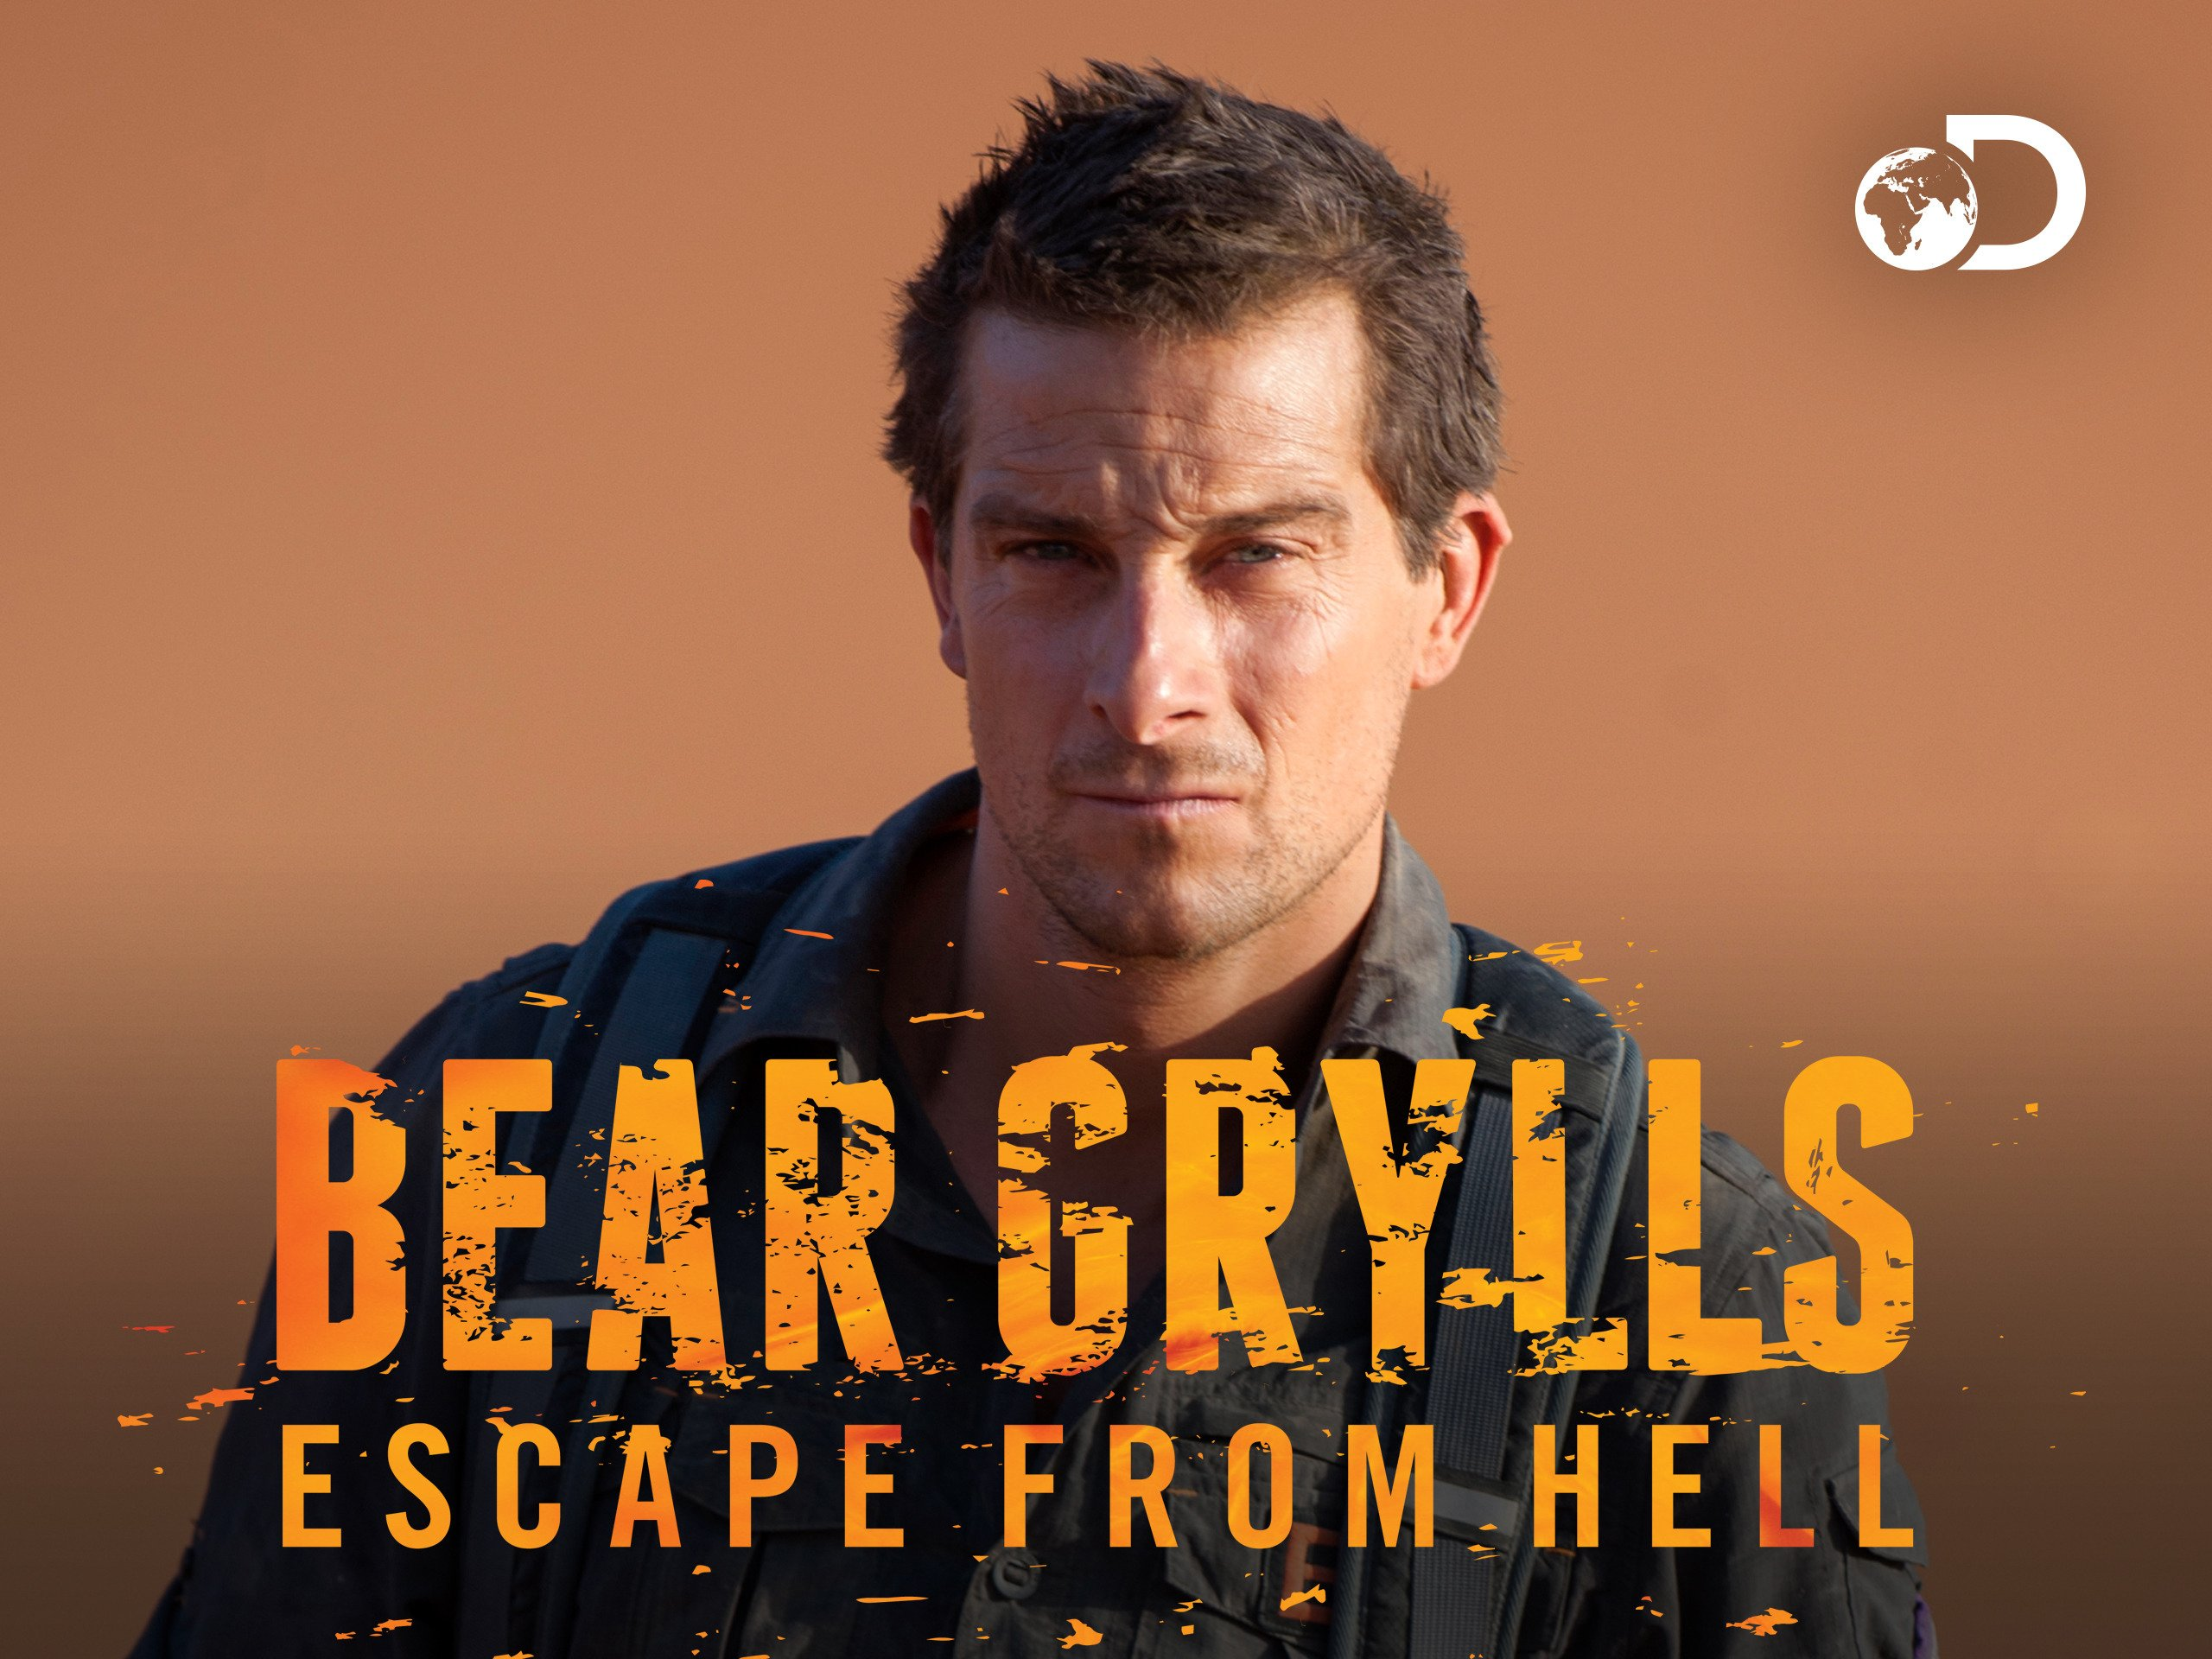 bear grylls escape from hell watch online free